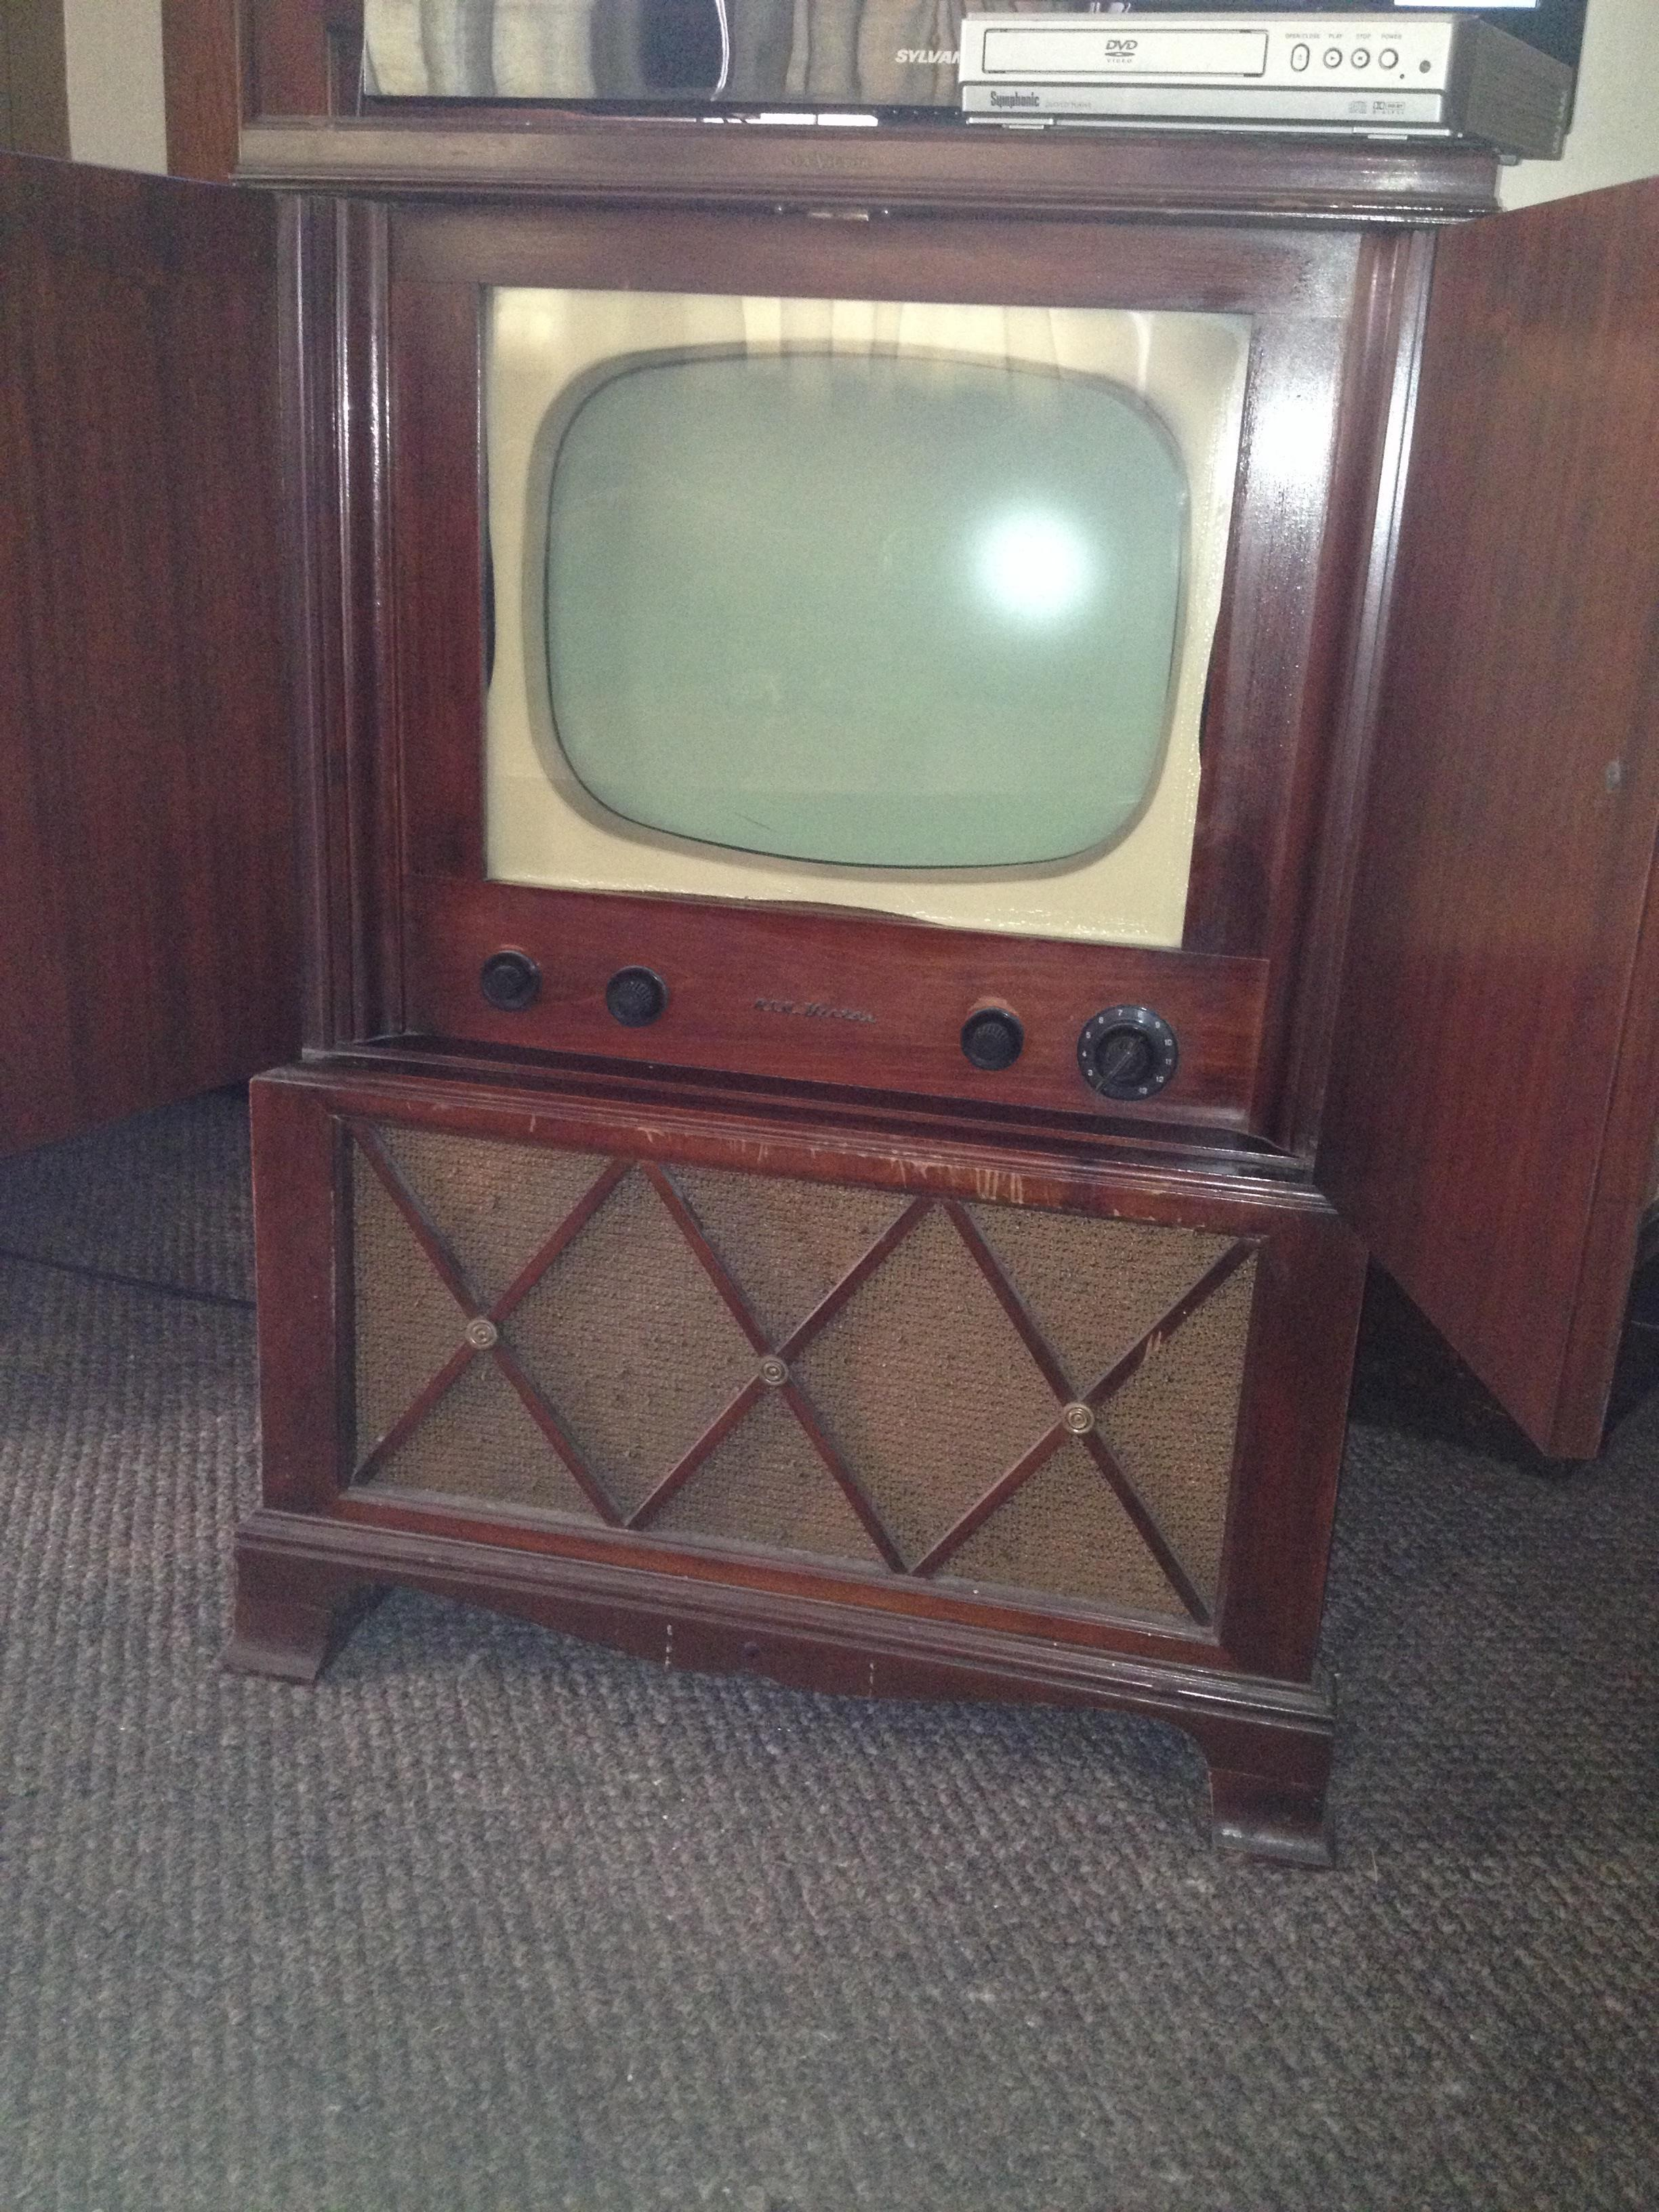 1950's?? RCA Victor TV in cabinet antique appraisal | InstAppraisal